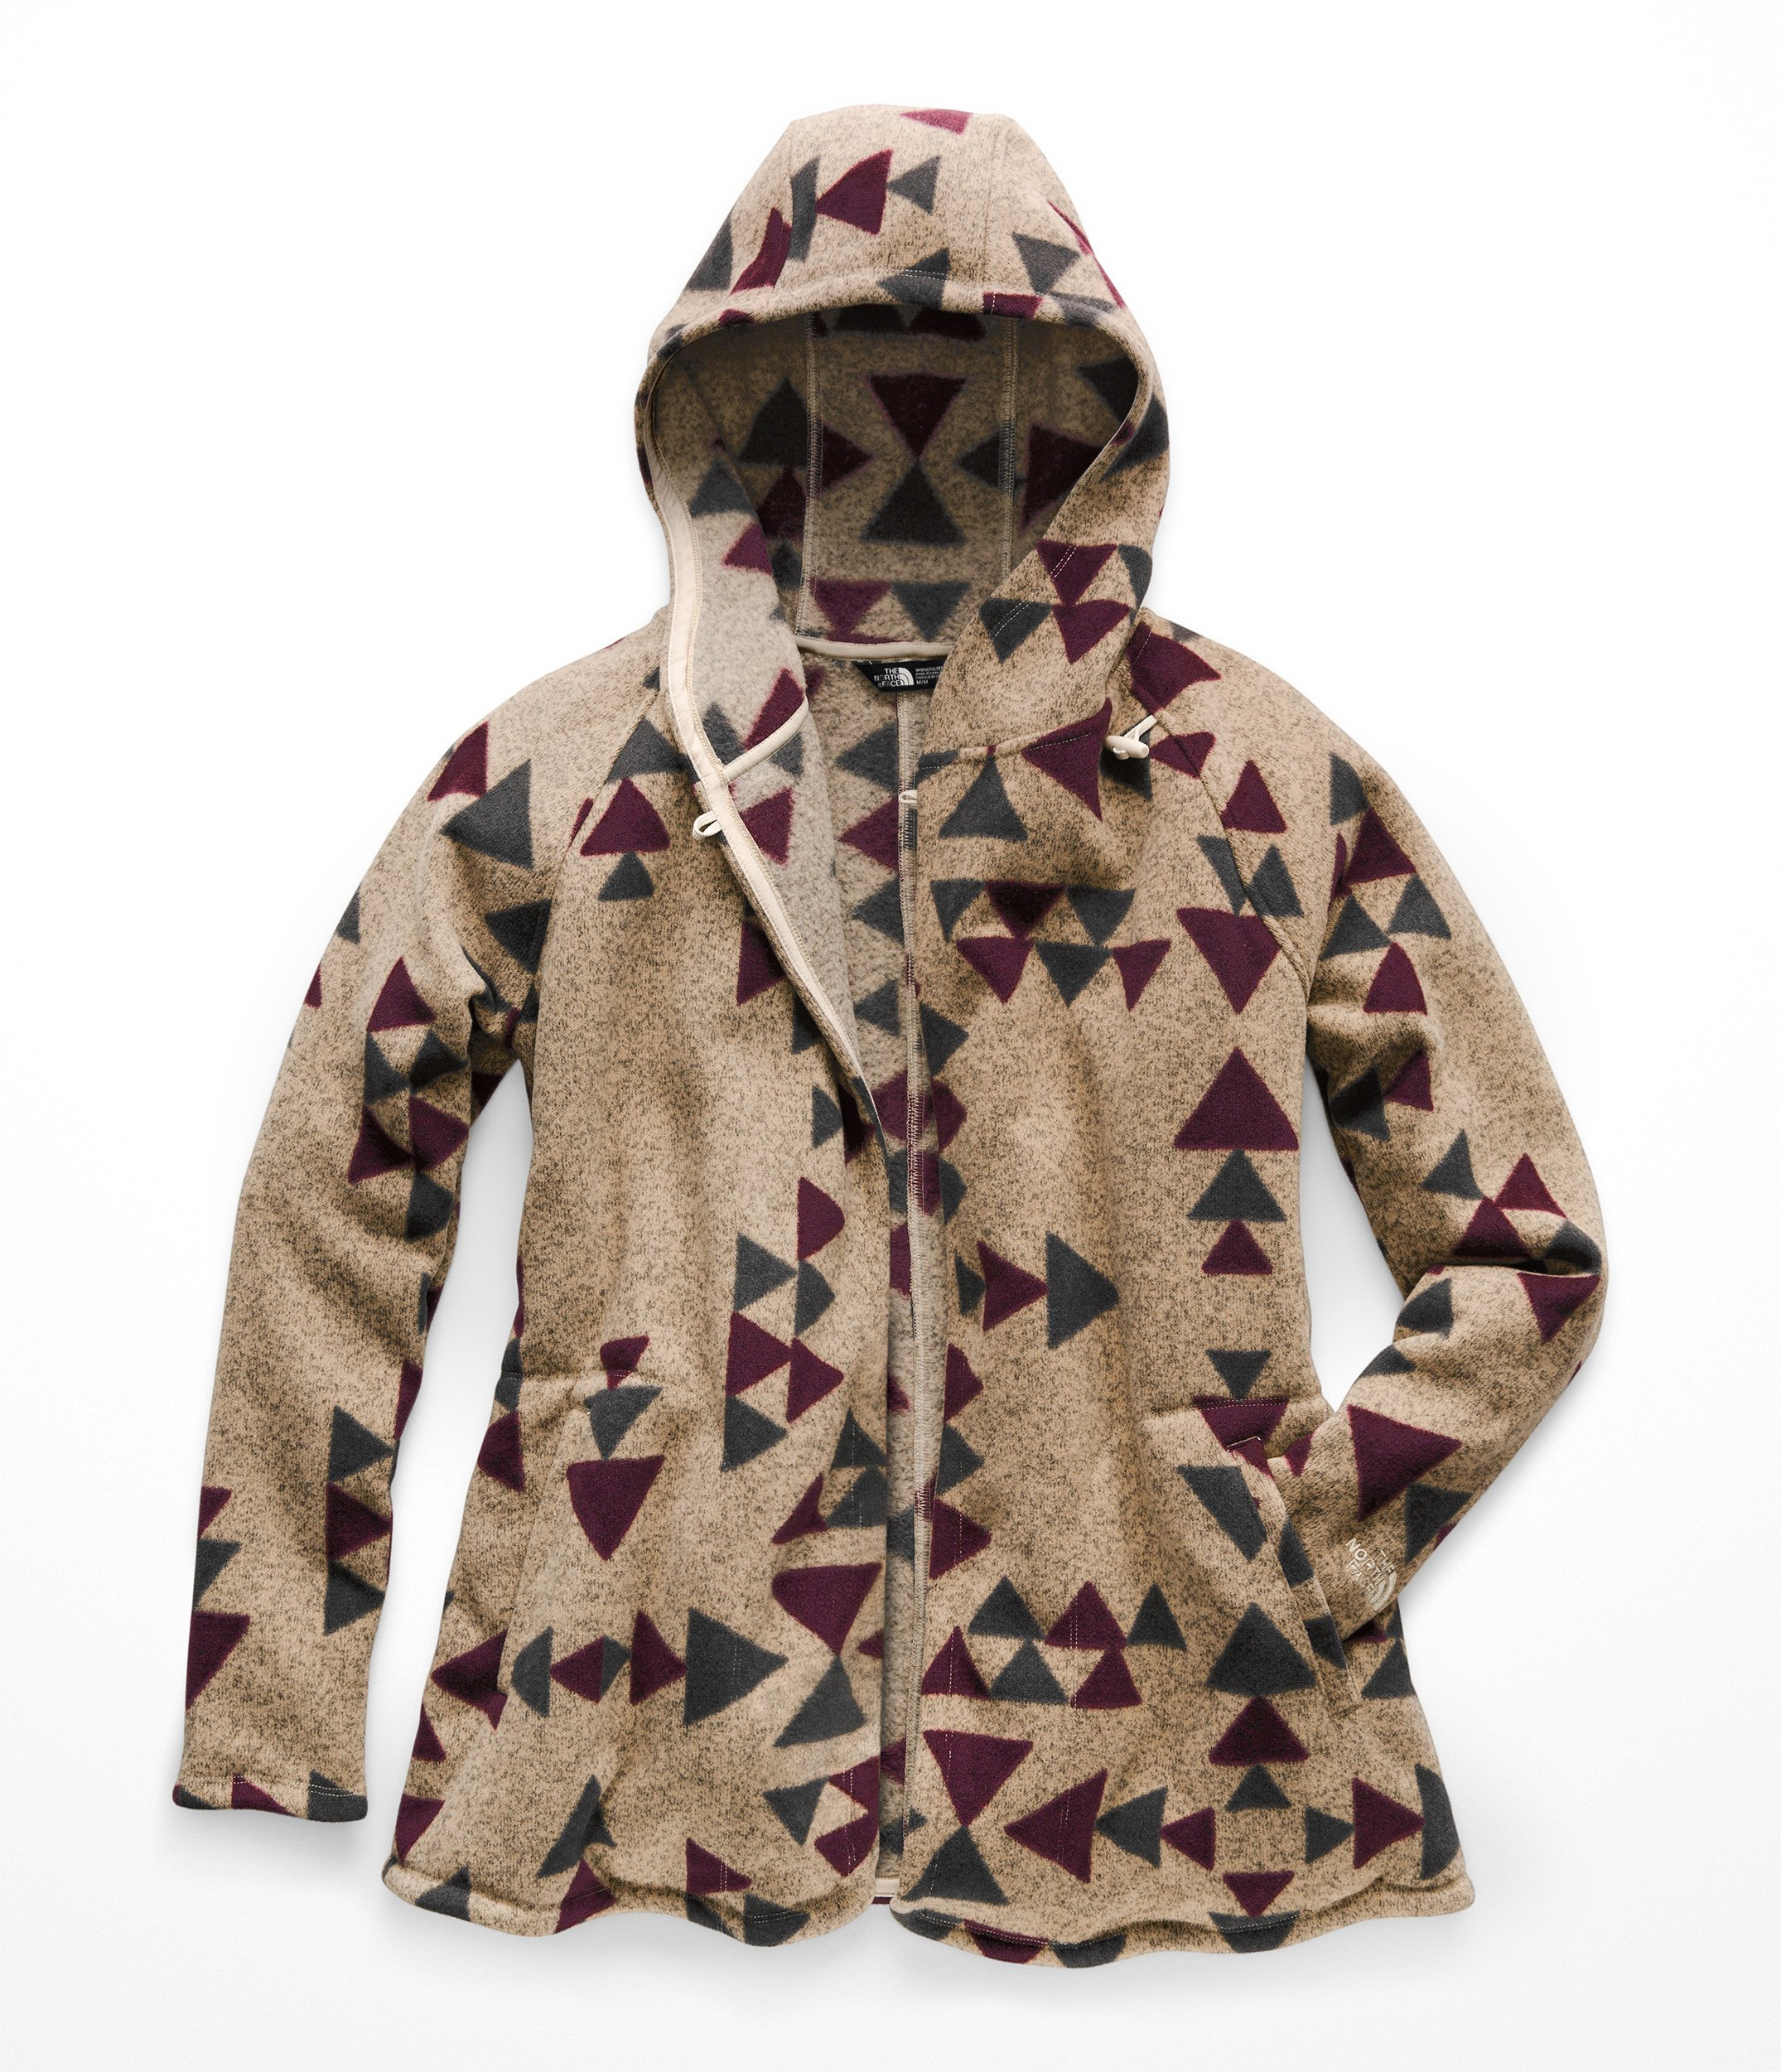 The North Face Women's Crescent Wrap - Peyote Beige Aztec Print - S